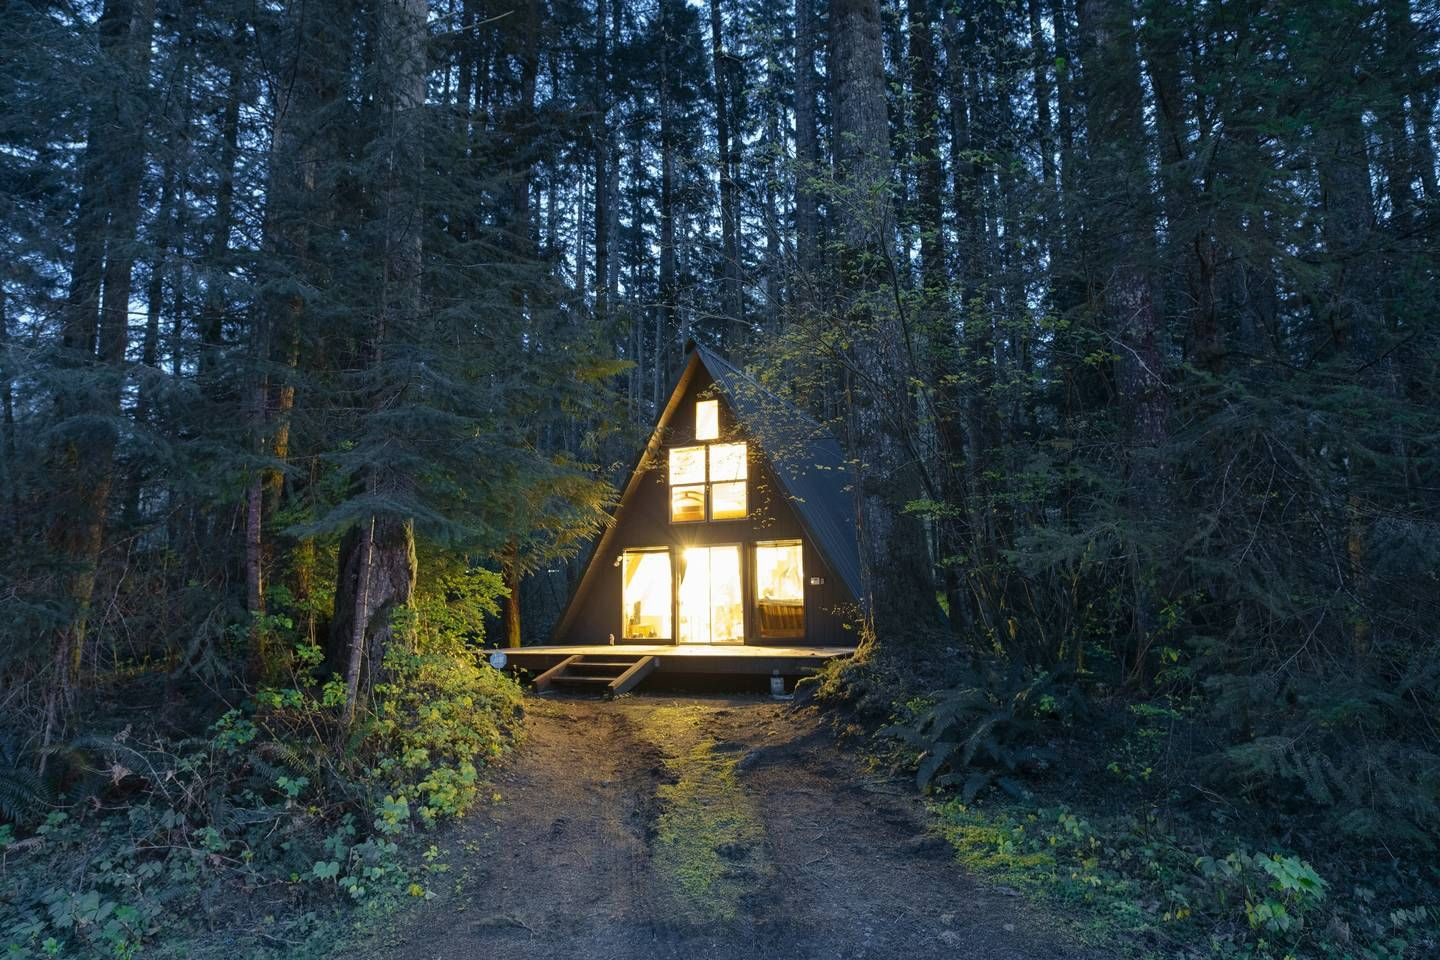 15 Airbnb Cabins To Rent This Winter A Frame Cabin Cabins In The Woods Vacation Cabin Rentals